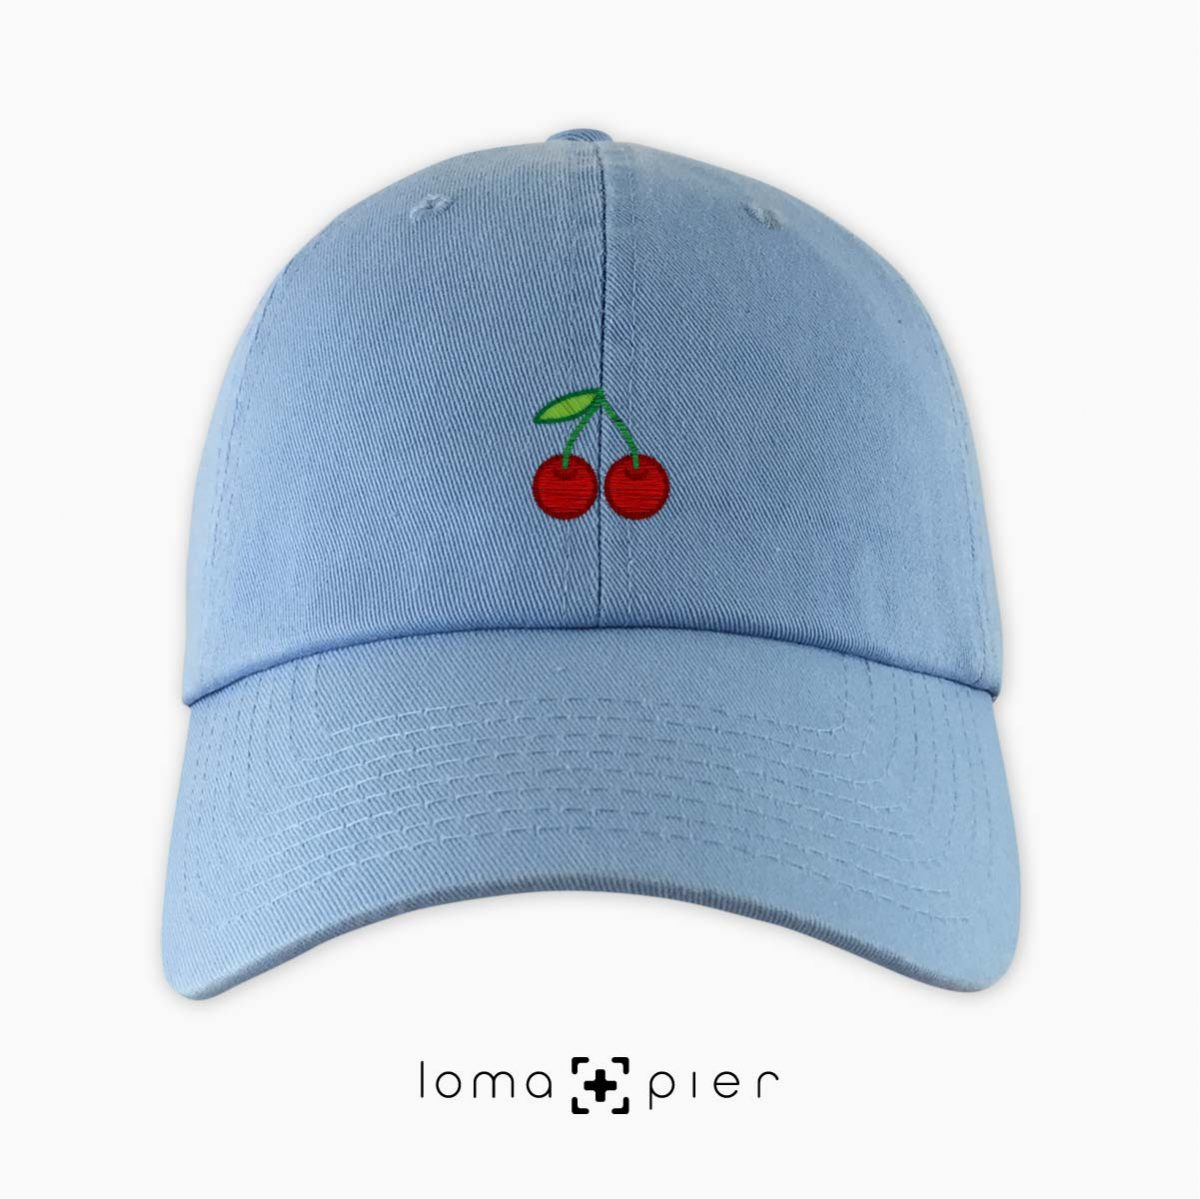 CHERRIES icon embroidered on a light blue dad hat by loma+pier hat store made in the USA